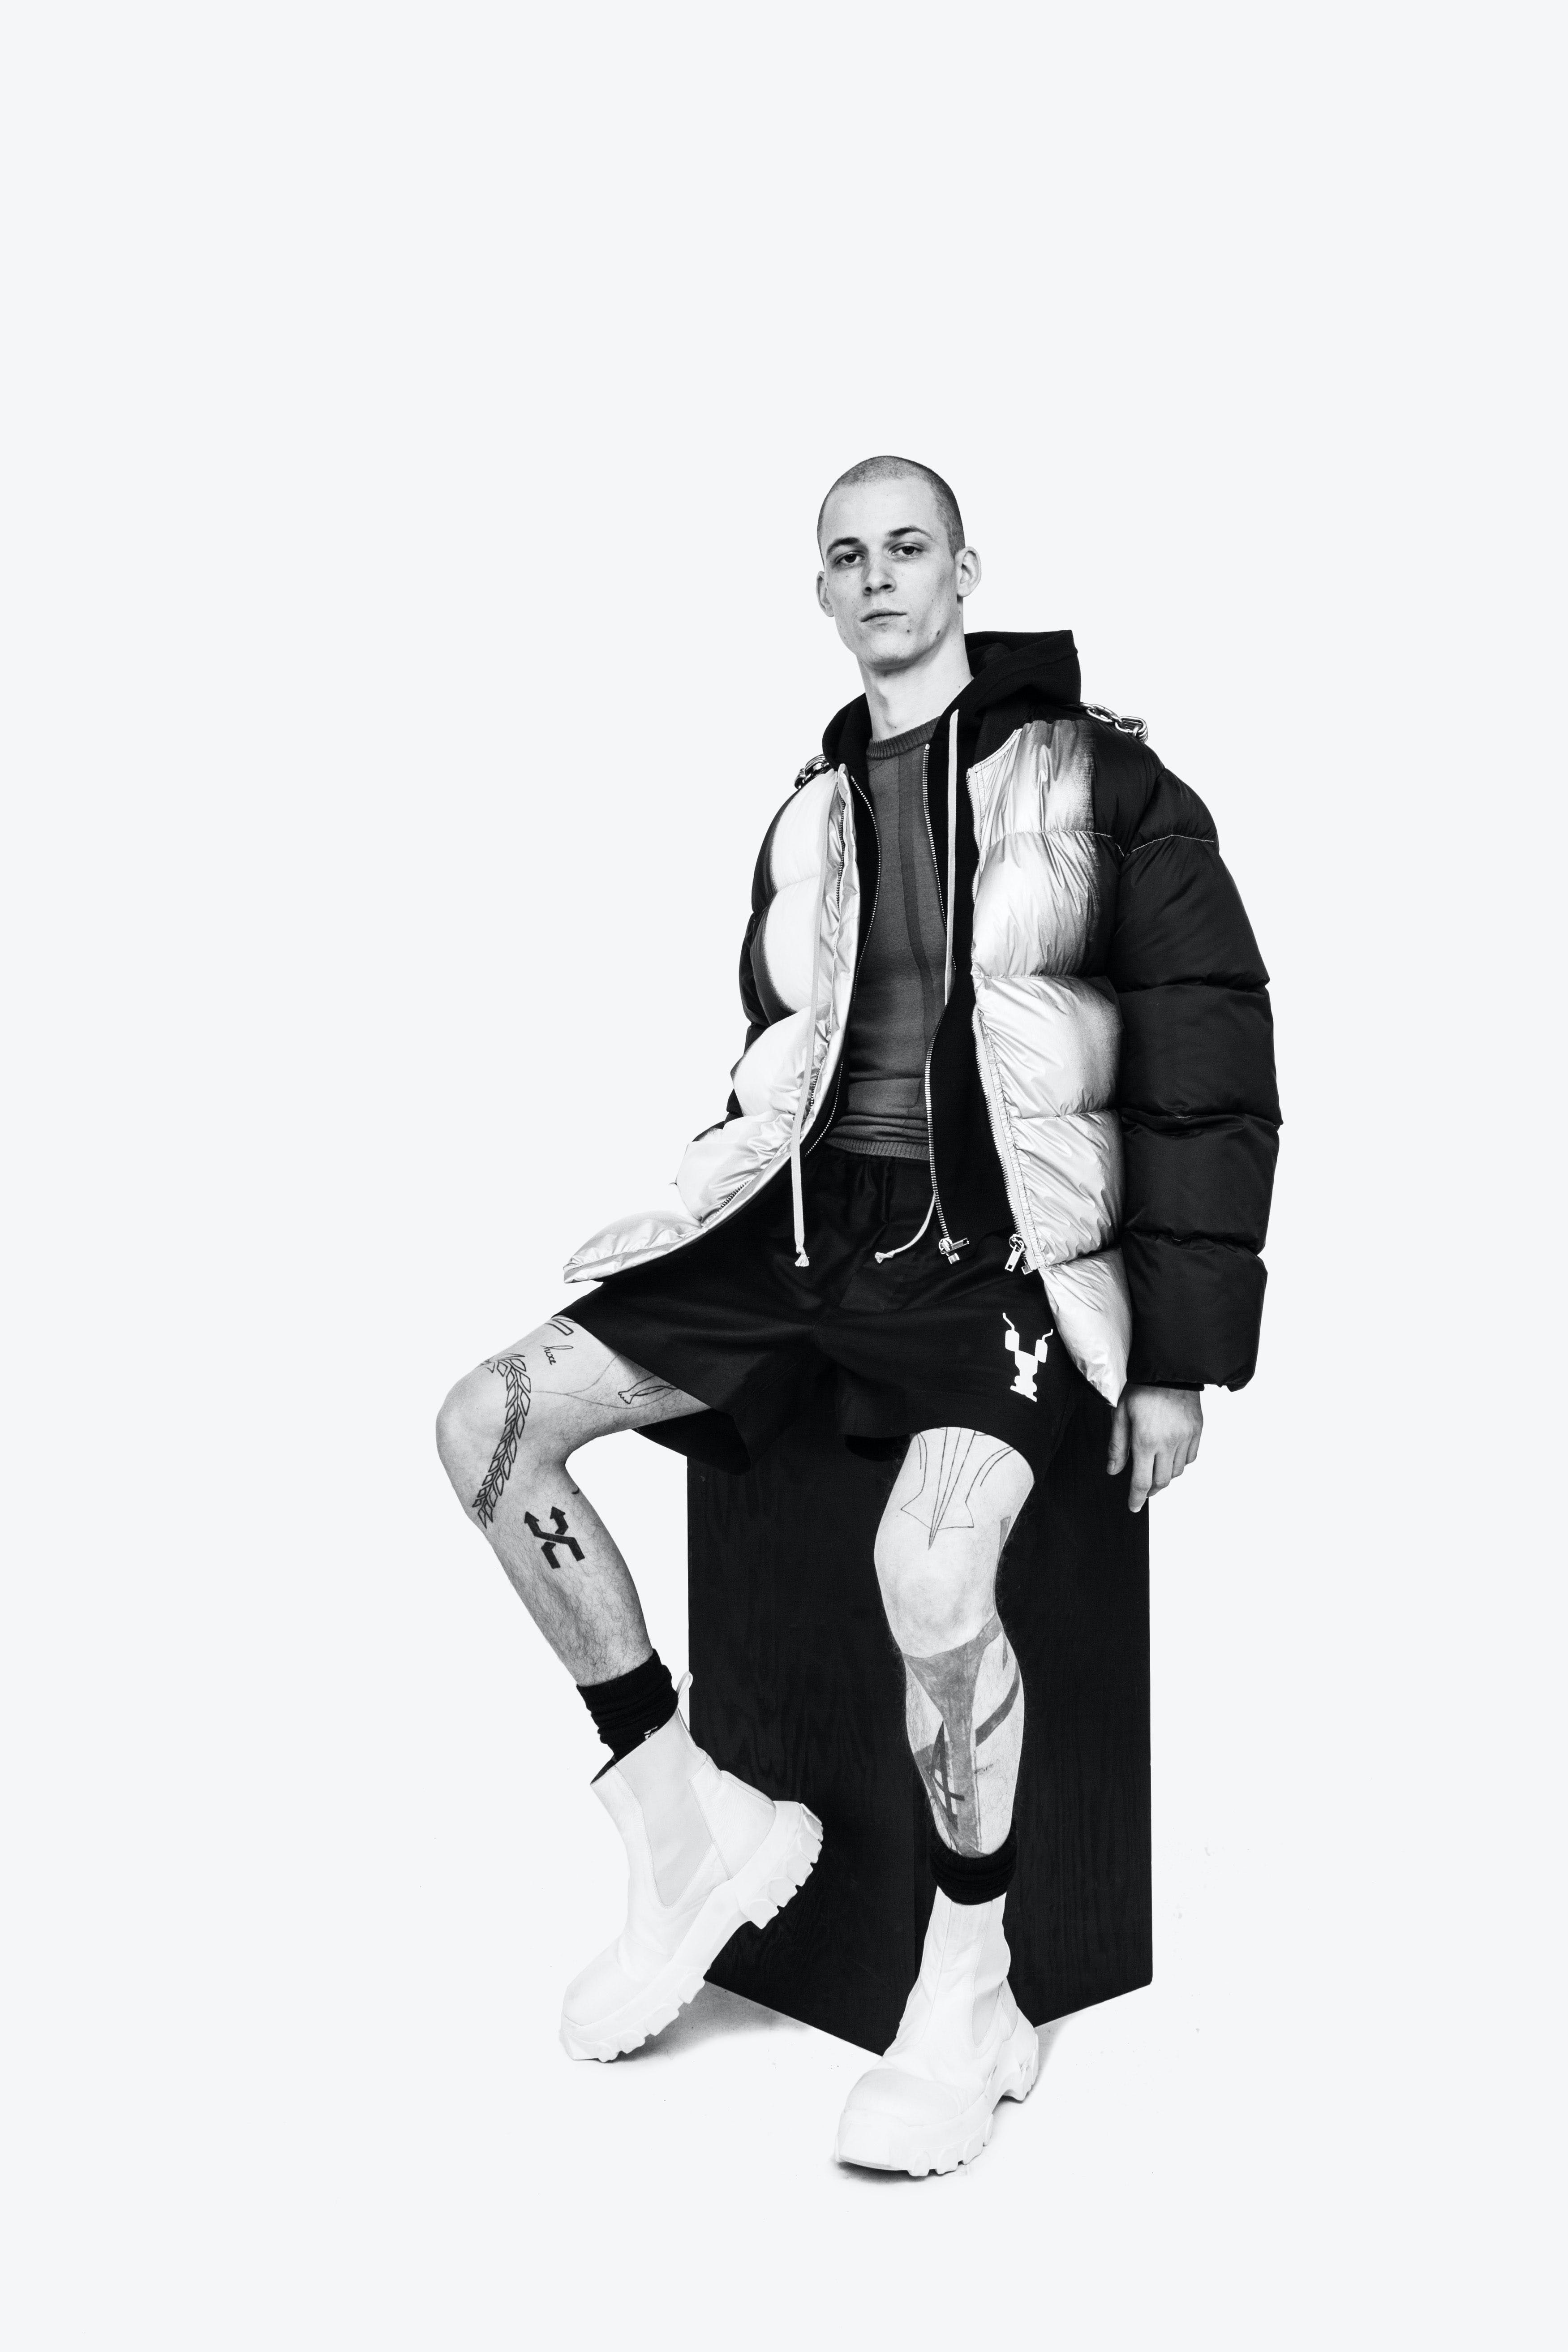 Rick Owens Campaign Duvet Puffer Jacket in Black and Silver Zip Up Hoddie DRKSHDW Shorts Mega Bozo Tractor Beetle Boots in Chalk White Mens SS19 Babel